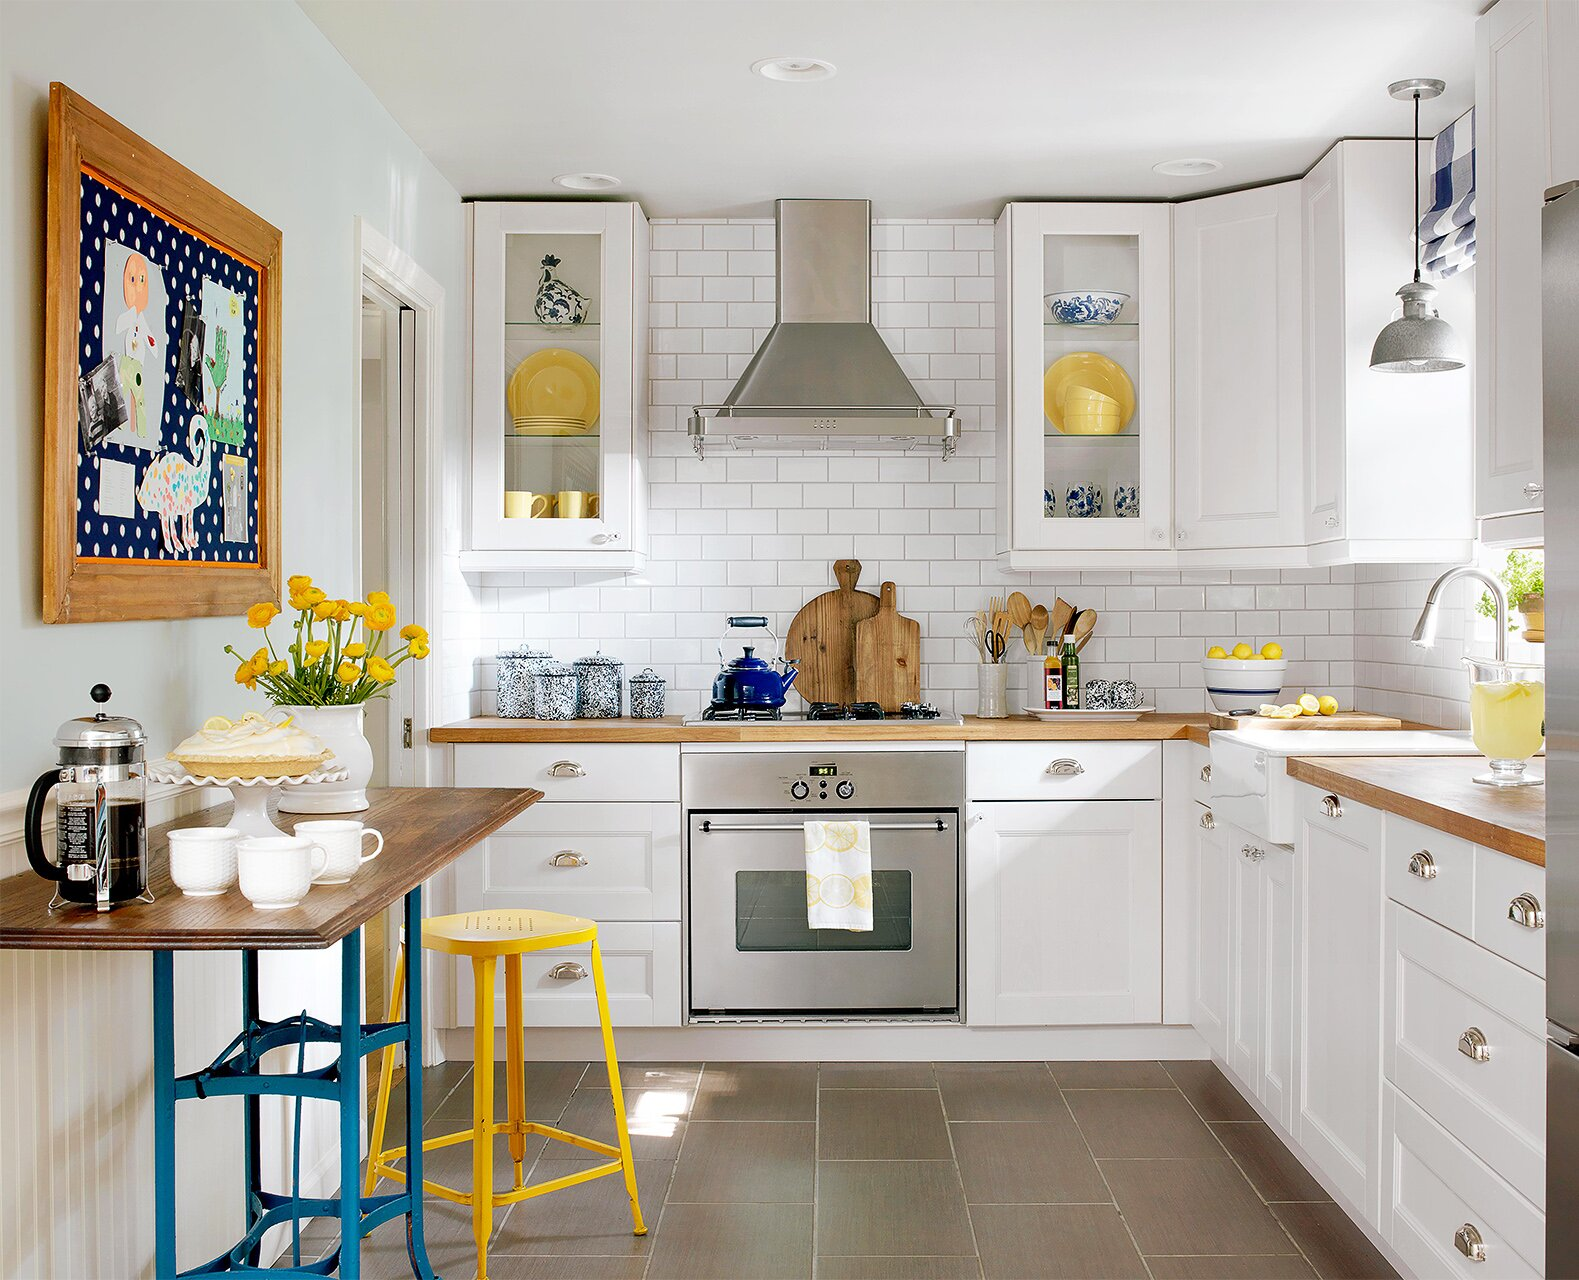 How to Make a Small Kitchen Look Larger Ideas Replacing Kitchen Desk Area on modern office desk ideas, kitchen breakfast bar window, kitchen mud room ideas, kitchen bathroom ideas, kitchen tv ideas, small desk organization ideas, house of concrete for front walkway ideas, kitchen workstation ideas, kitchen fridge ideas, kitchen cabinets, kitchen phone ideas, kitchen storage ideas, living room area ideas, kitchen island design ideas for small kitchens, farmhouse small kitchen ideas, kitchen ideas for small kitchens with island, kitchen gas stove ideas, kitchen dining room designs with islands, kitchen with corner sink ideas, bedroom desk area ideas,